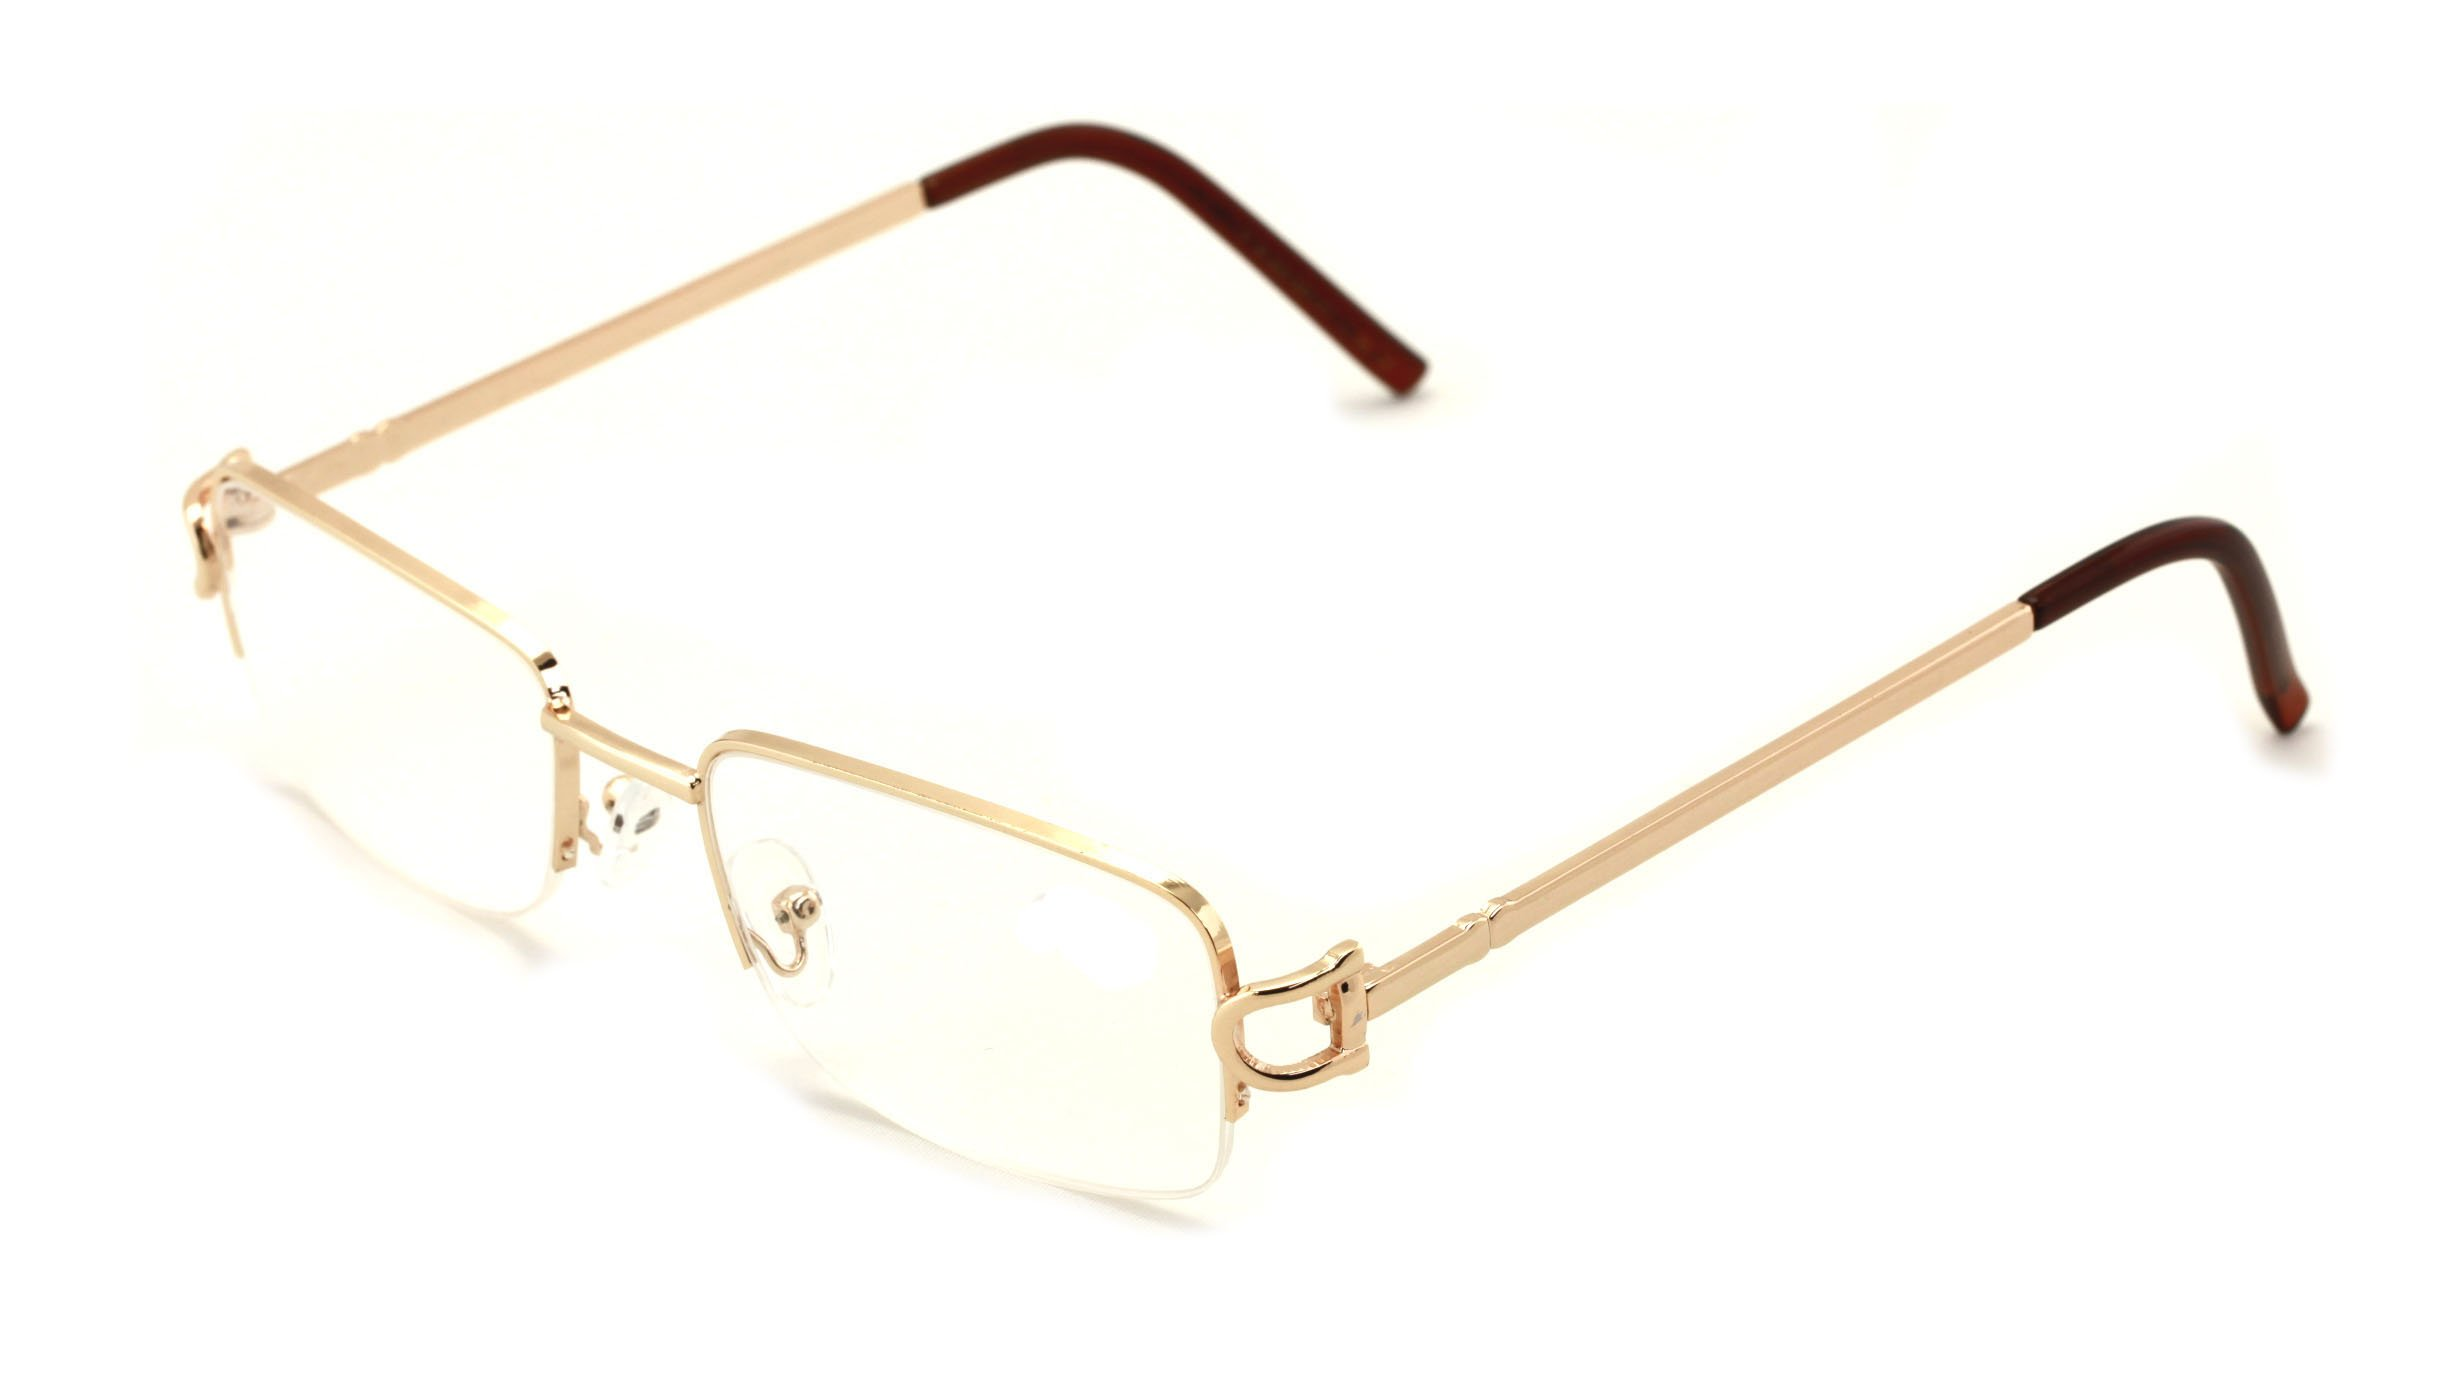 V.W.E. Rectangular Frame Clear Lens Designer Sunglasses RX Optical Eye Glasses (Gold, Clear) by Vision World Eyewear